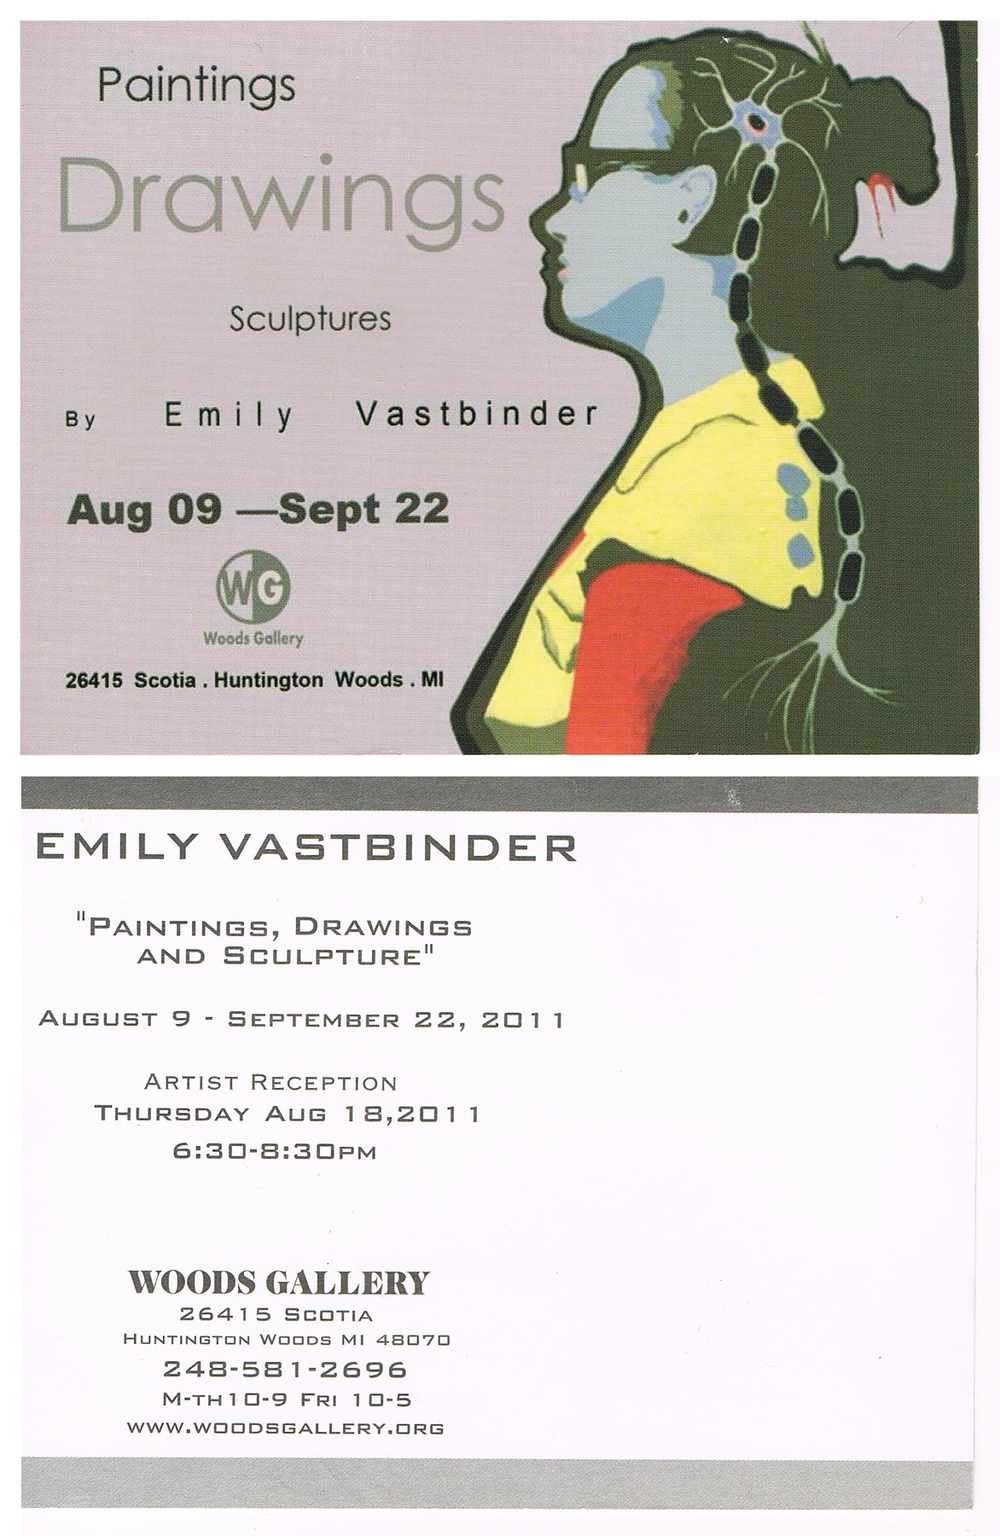 Emily Vastbinder: Paintings Drawings Sculptures , 2011, at the Woods Gallery, Huntington Woods MI